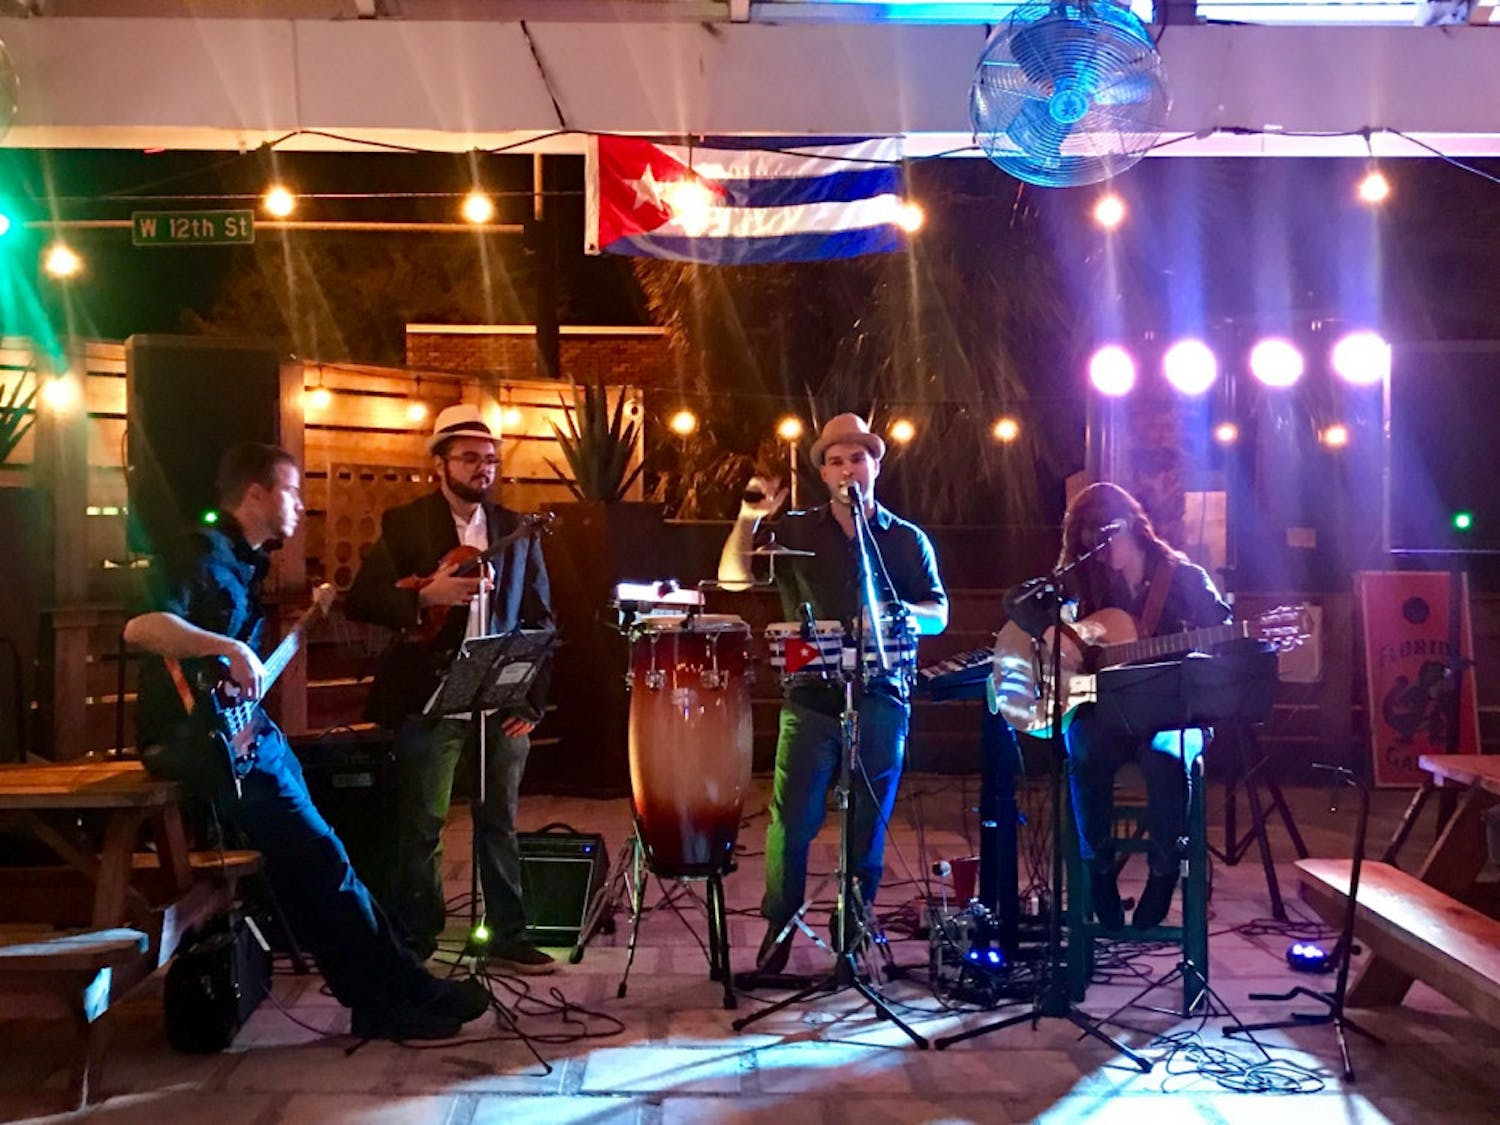 Latino's Sound Machine, a local latin music band, plays at Felipe's Taqueria, located at 1209 W. University Ave., during a fundraising event for Cuban hurricane victims. The event raised $540 for construction supplies.